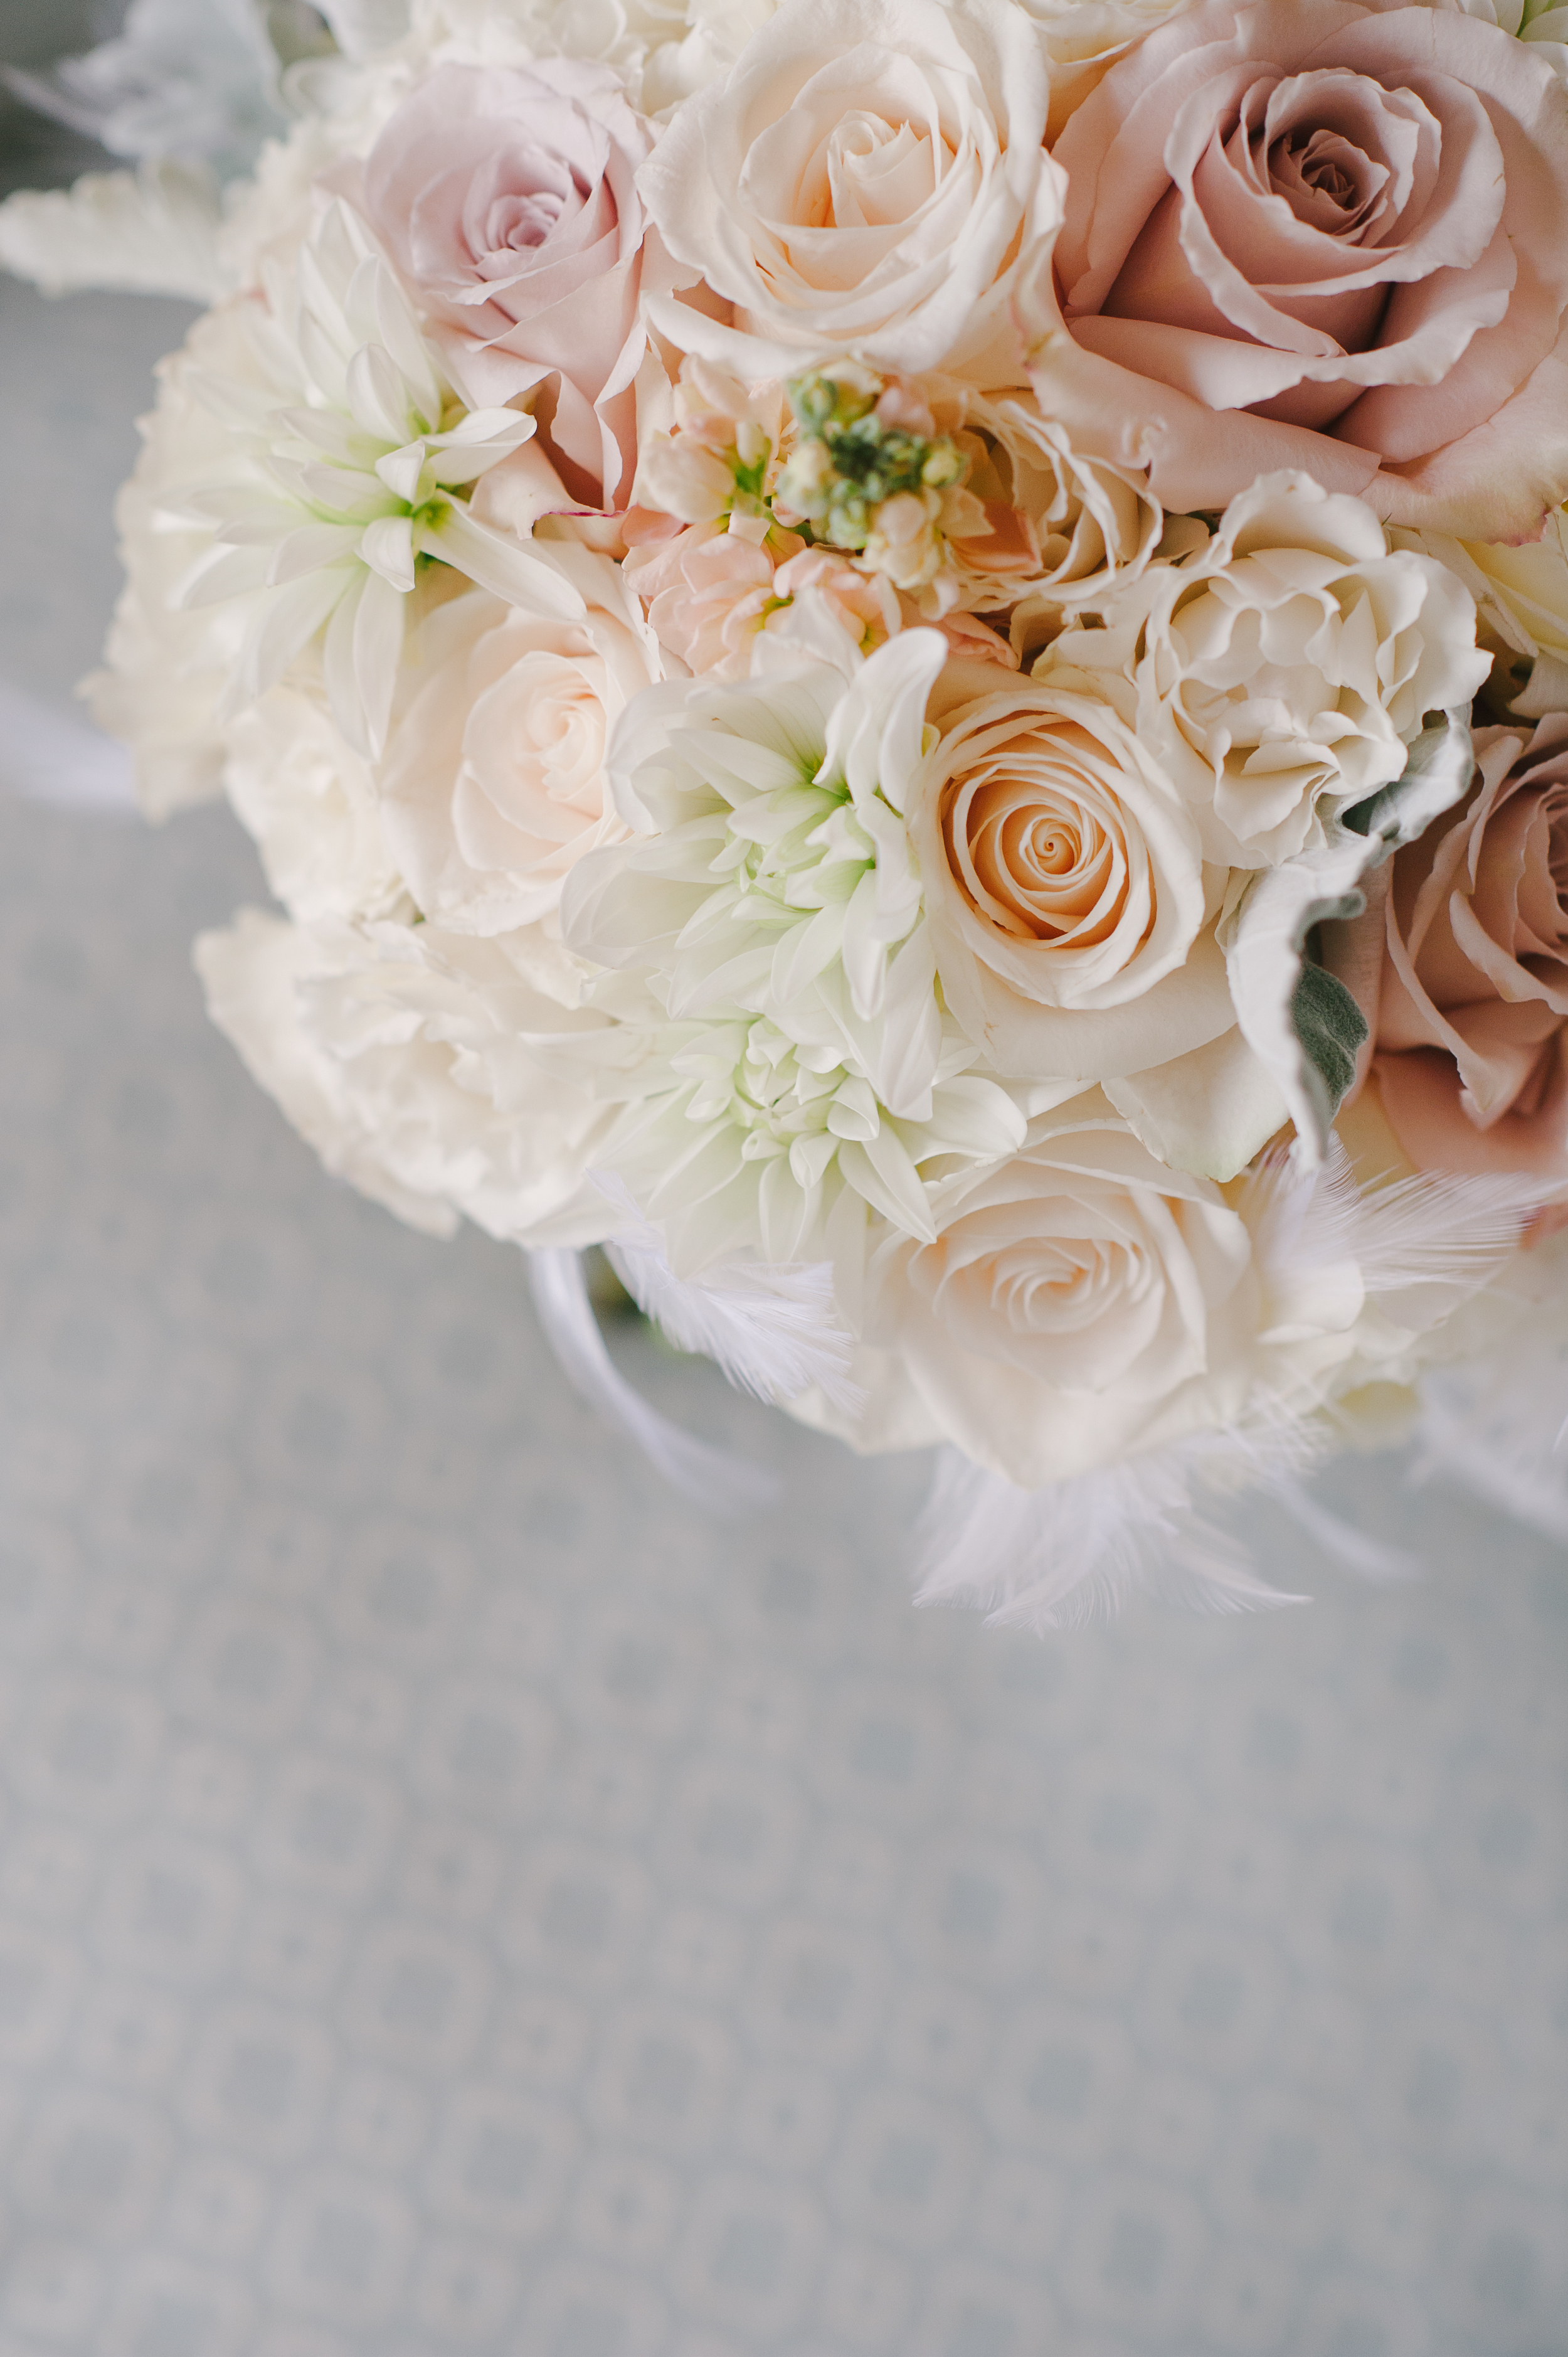 waveny_house_wedding_New_canaan_CT_Amy_Champagne_Events030.jpg